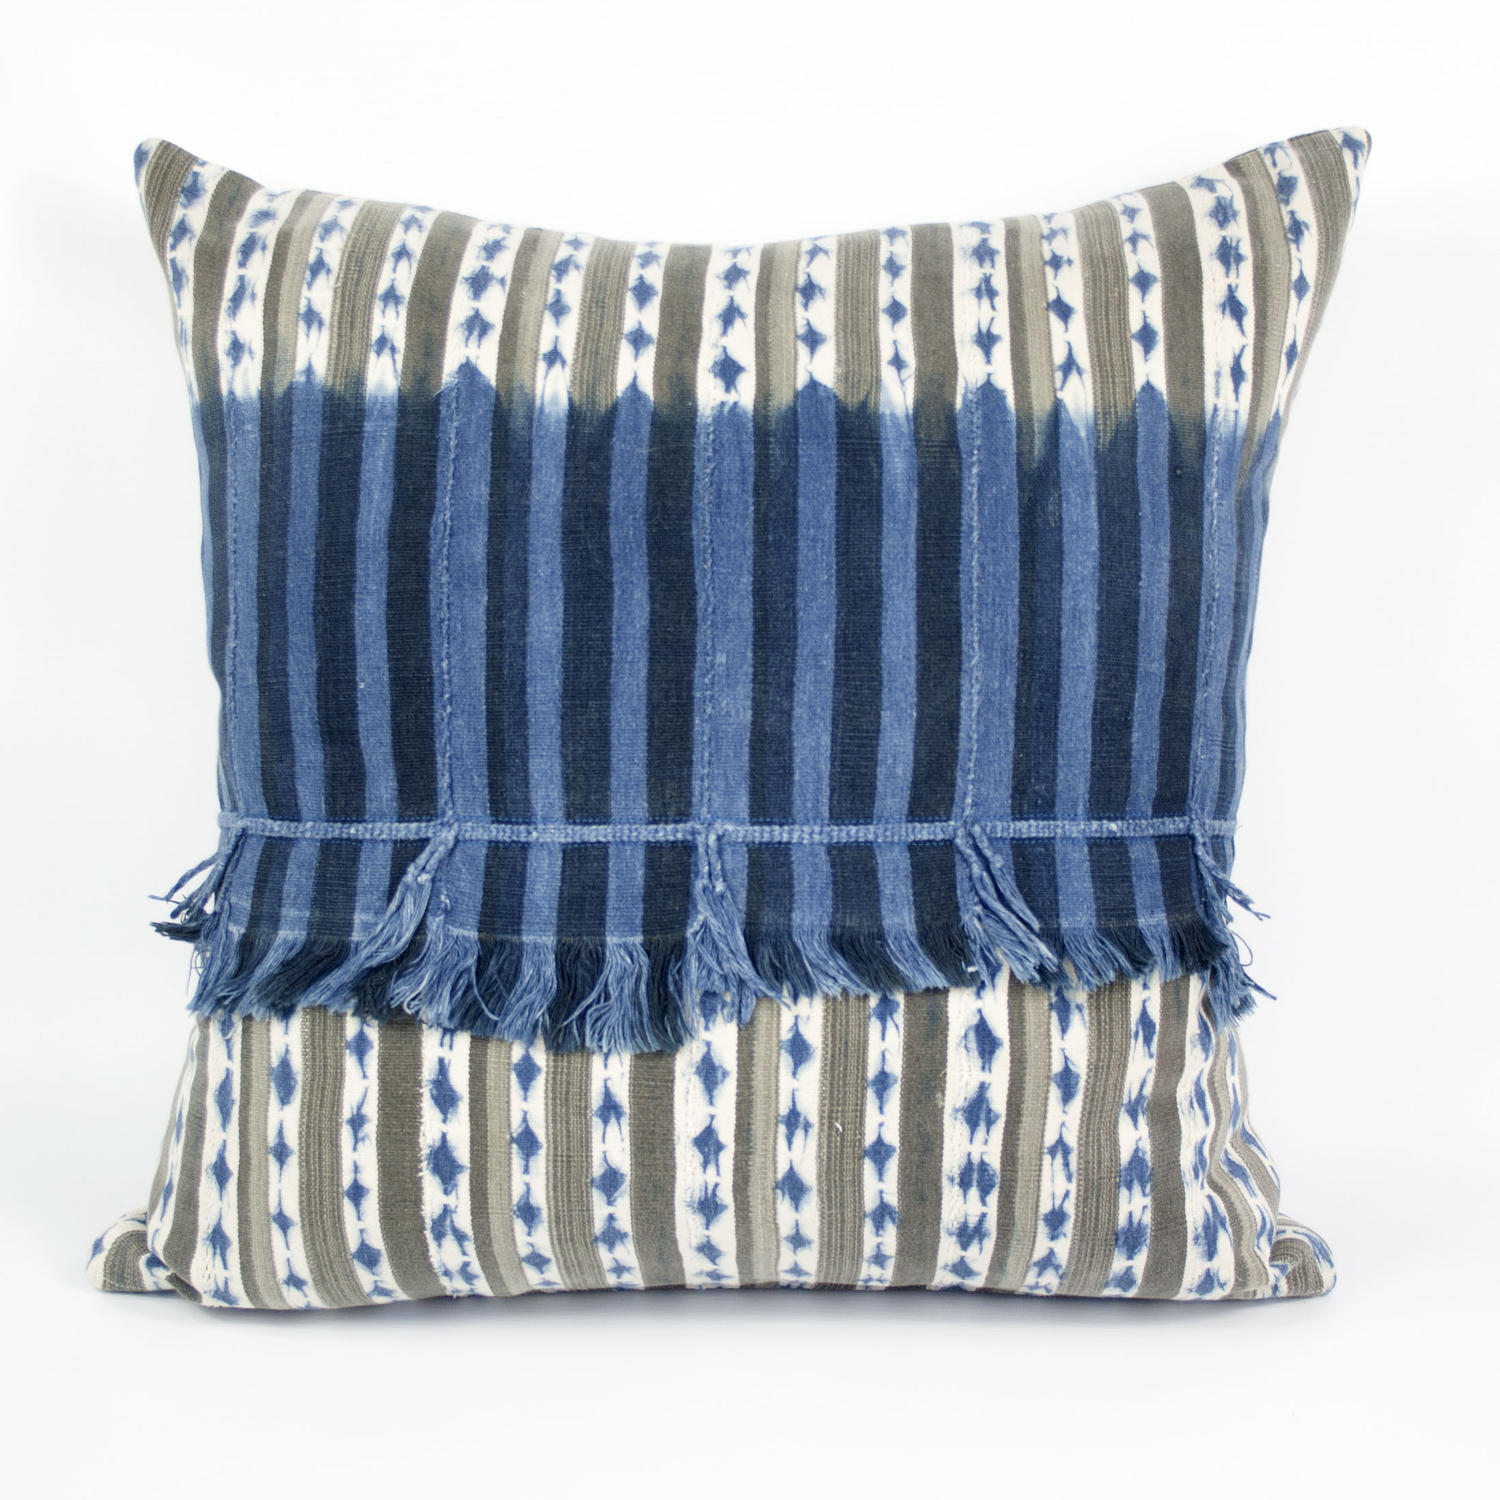 Baule Fringe Cushion